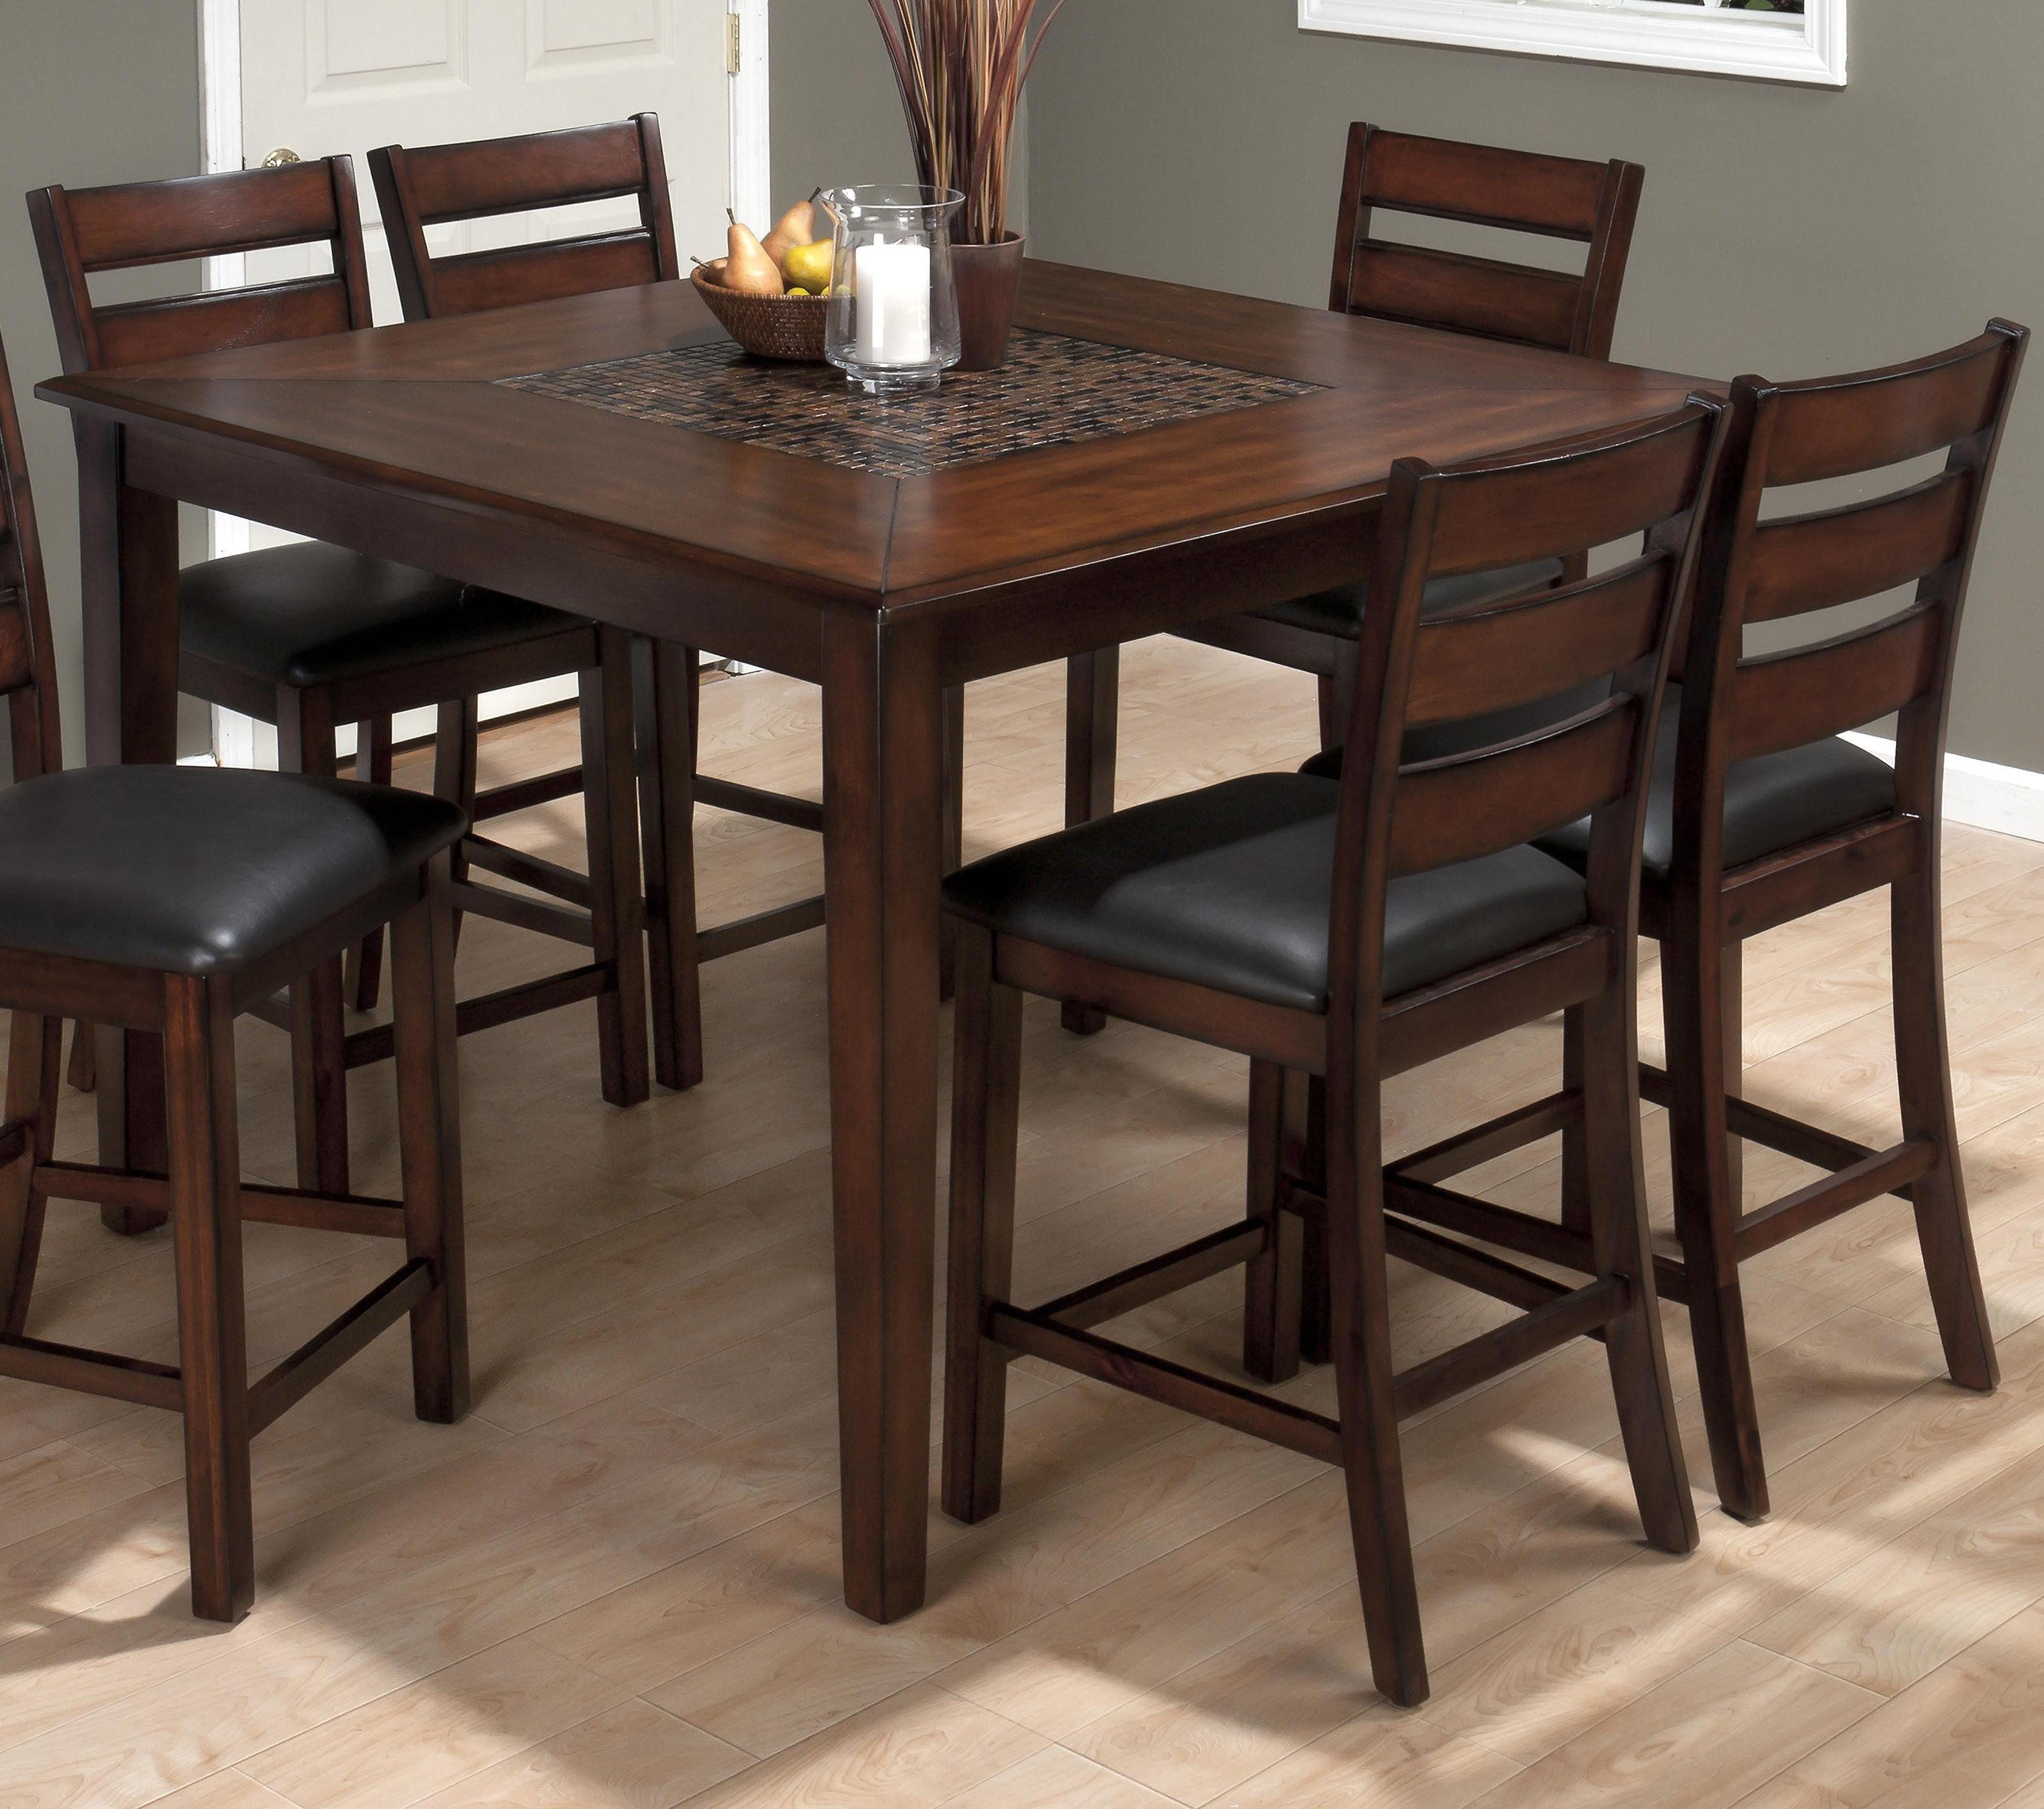 Baroque Brown 5 Piece Counter Height Dining Set by Jofran at Pilgrim Furniture City